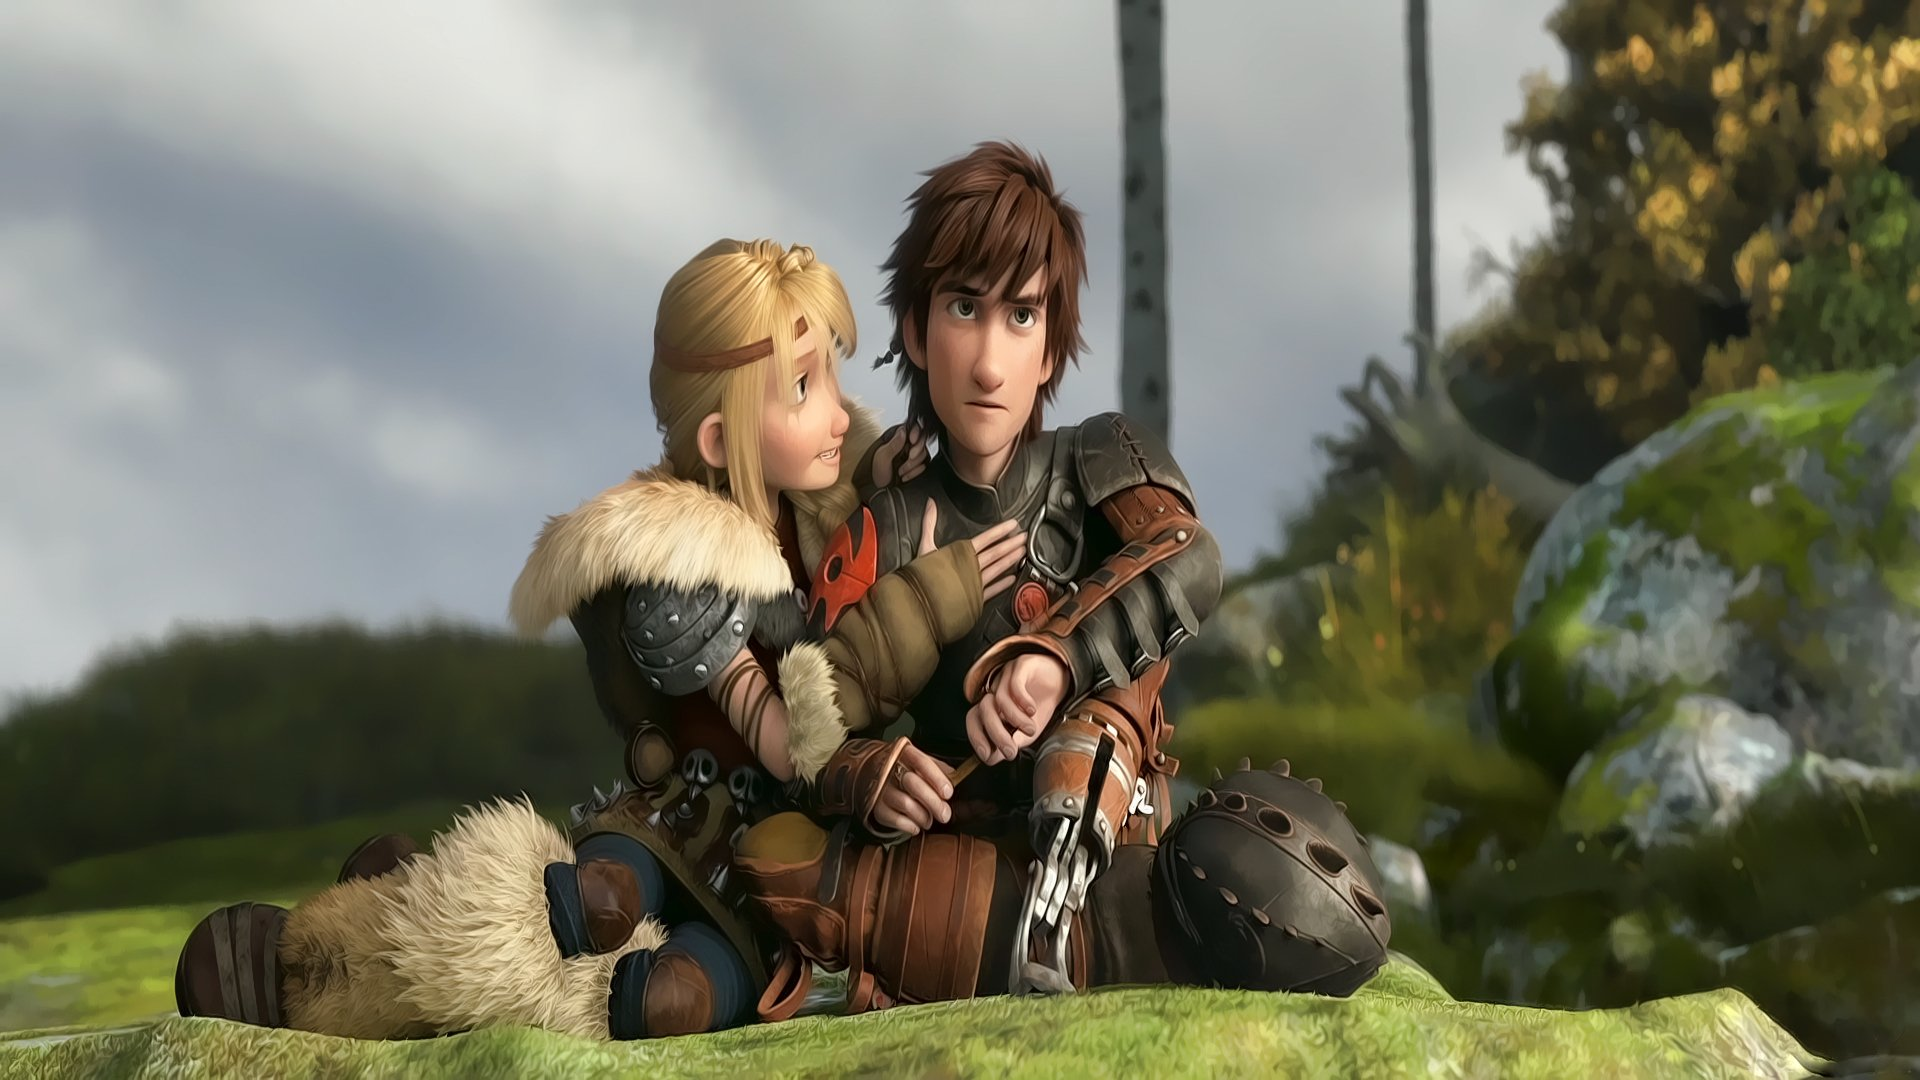 Astrid Hiccup How To Train Your Dragon 2 Stoick Toothless Valka HD Wallpaper